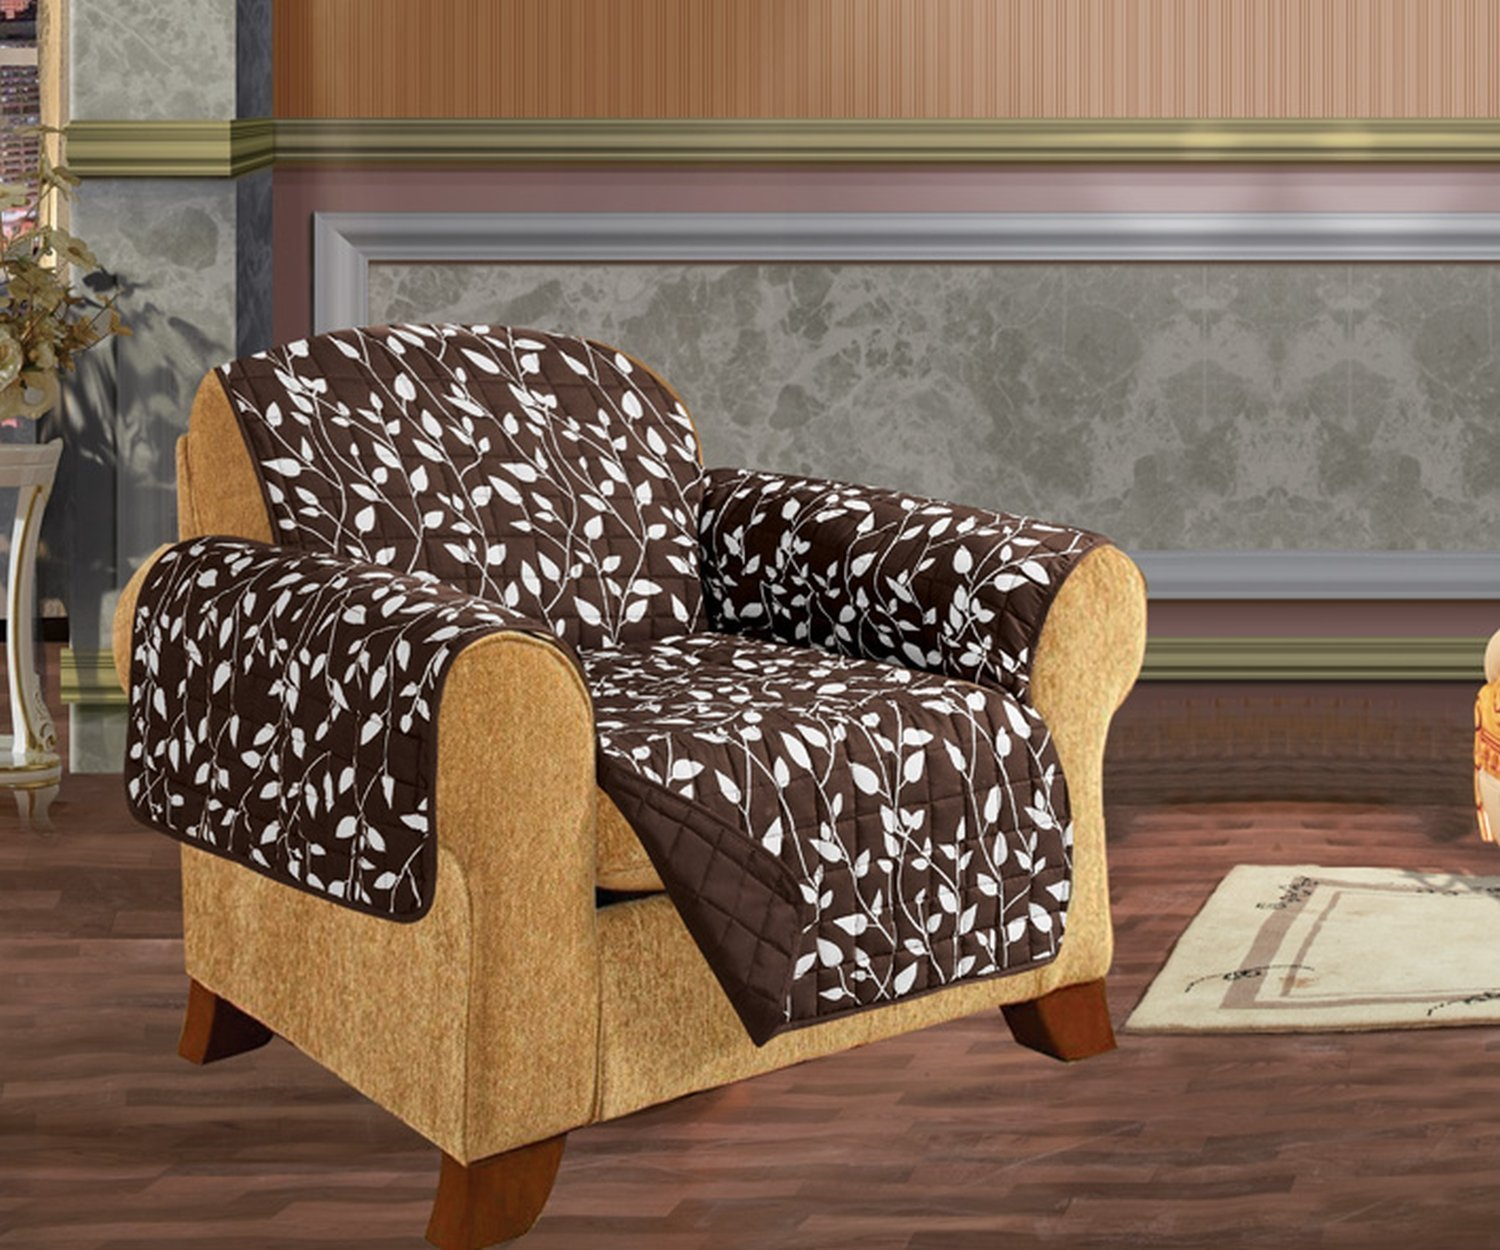 Quilted Pet Dog Children Kids - FURNITURE PROTECTOR- Microfiber Slip Cover Chocolate Chair Leaf Design